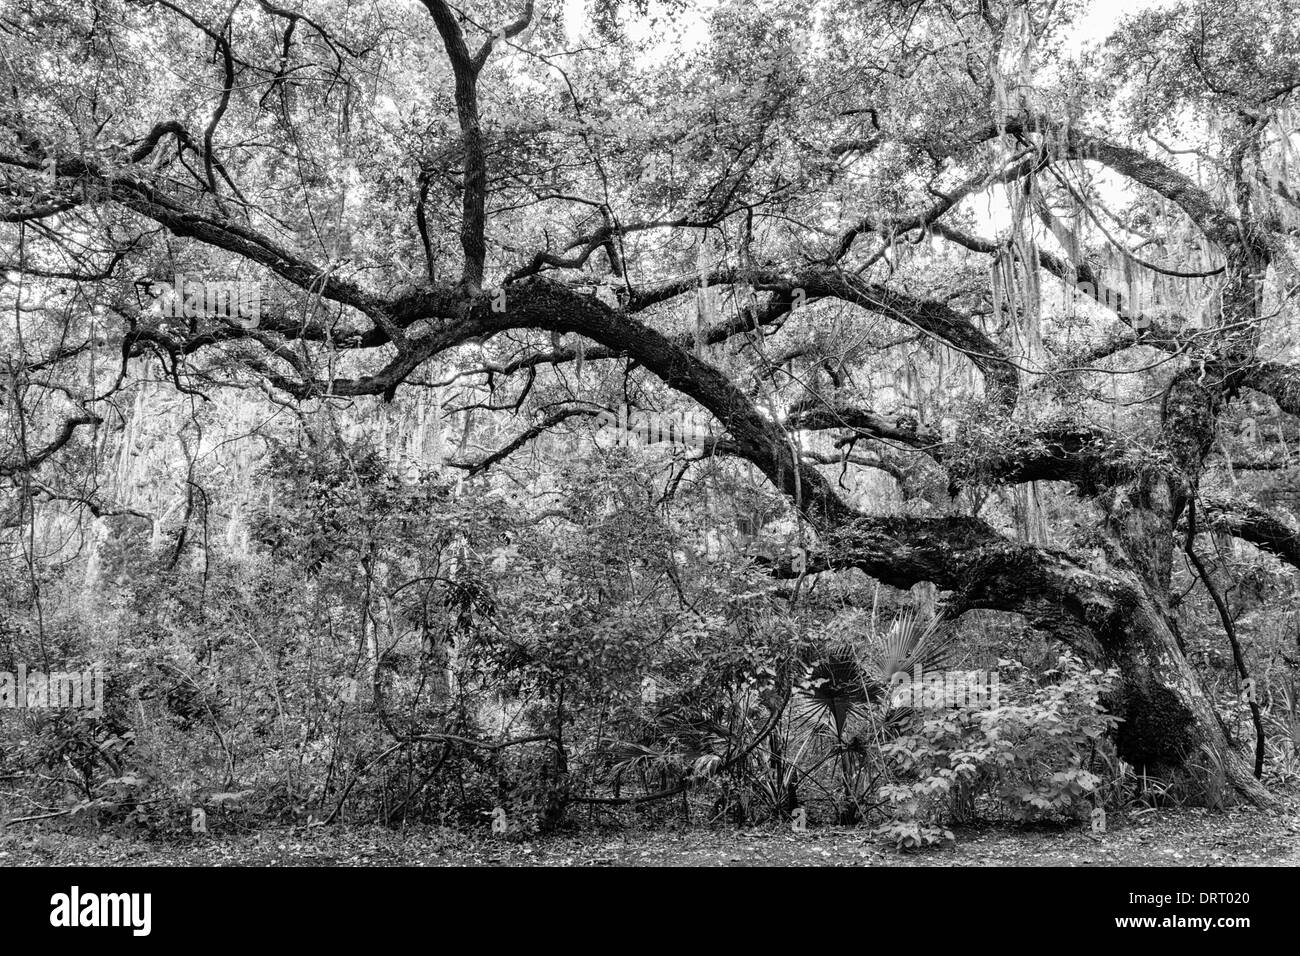 Twisted old live oak tree (Quercus virginiana) in Fort Clinch State Park, Florida converted to black and white. - Stock Image